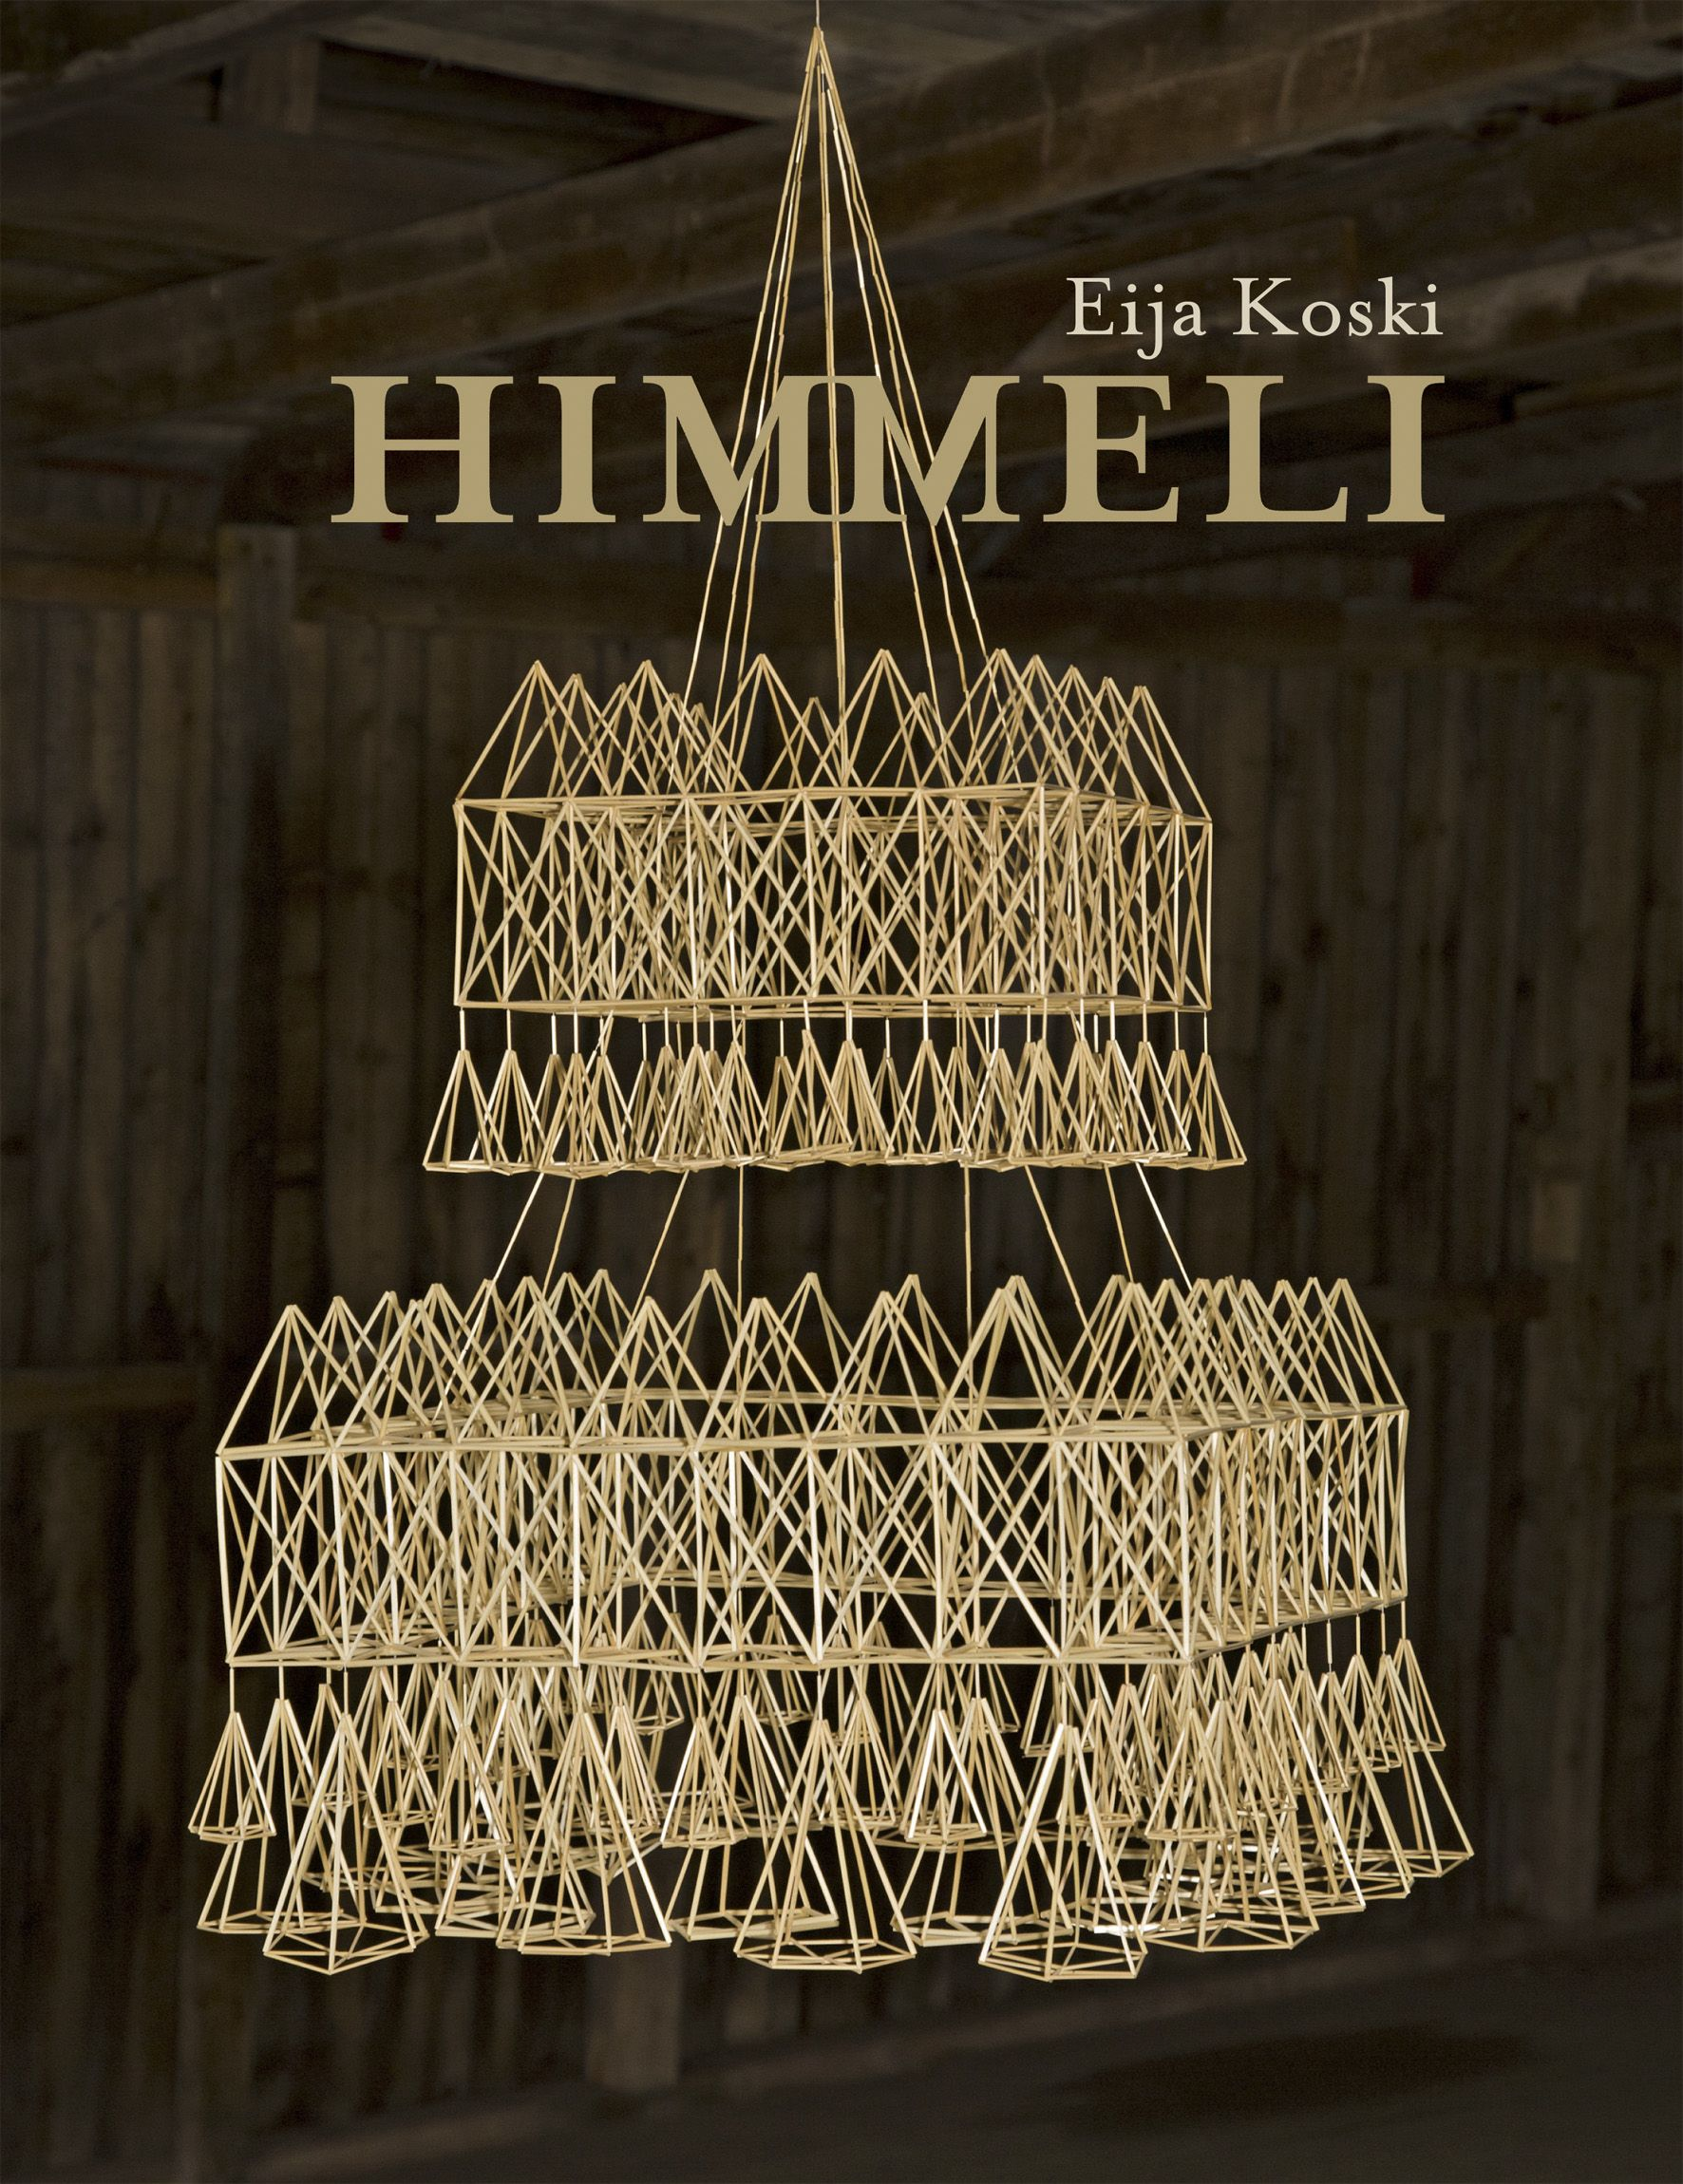 My himmeli book my himmelis pinterest handmade ornaments himmeli straw crafts with symbol meaning and often made for christmas a popular tradition in finland since ages this book by eija koski newly launched arubaitofo Gallery